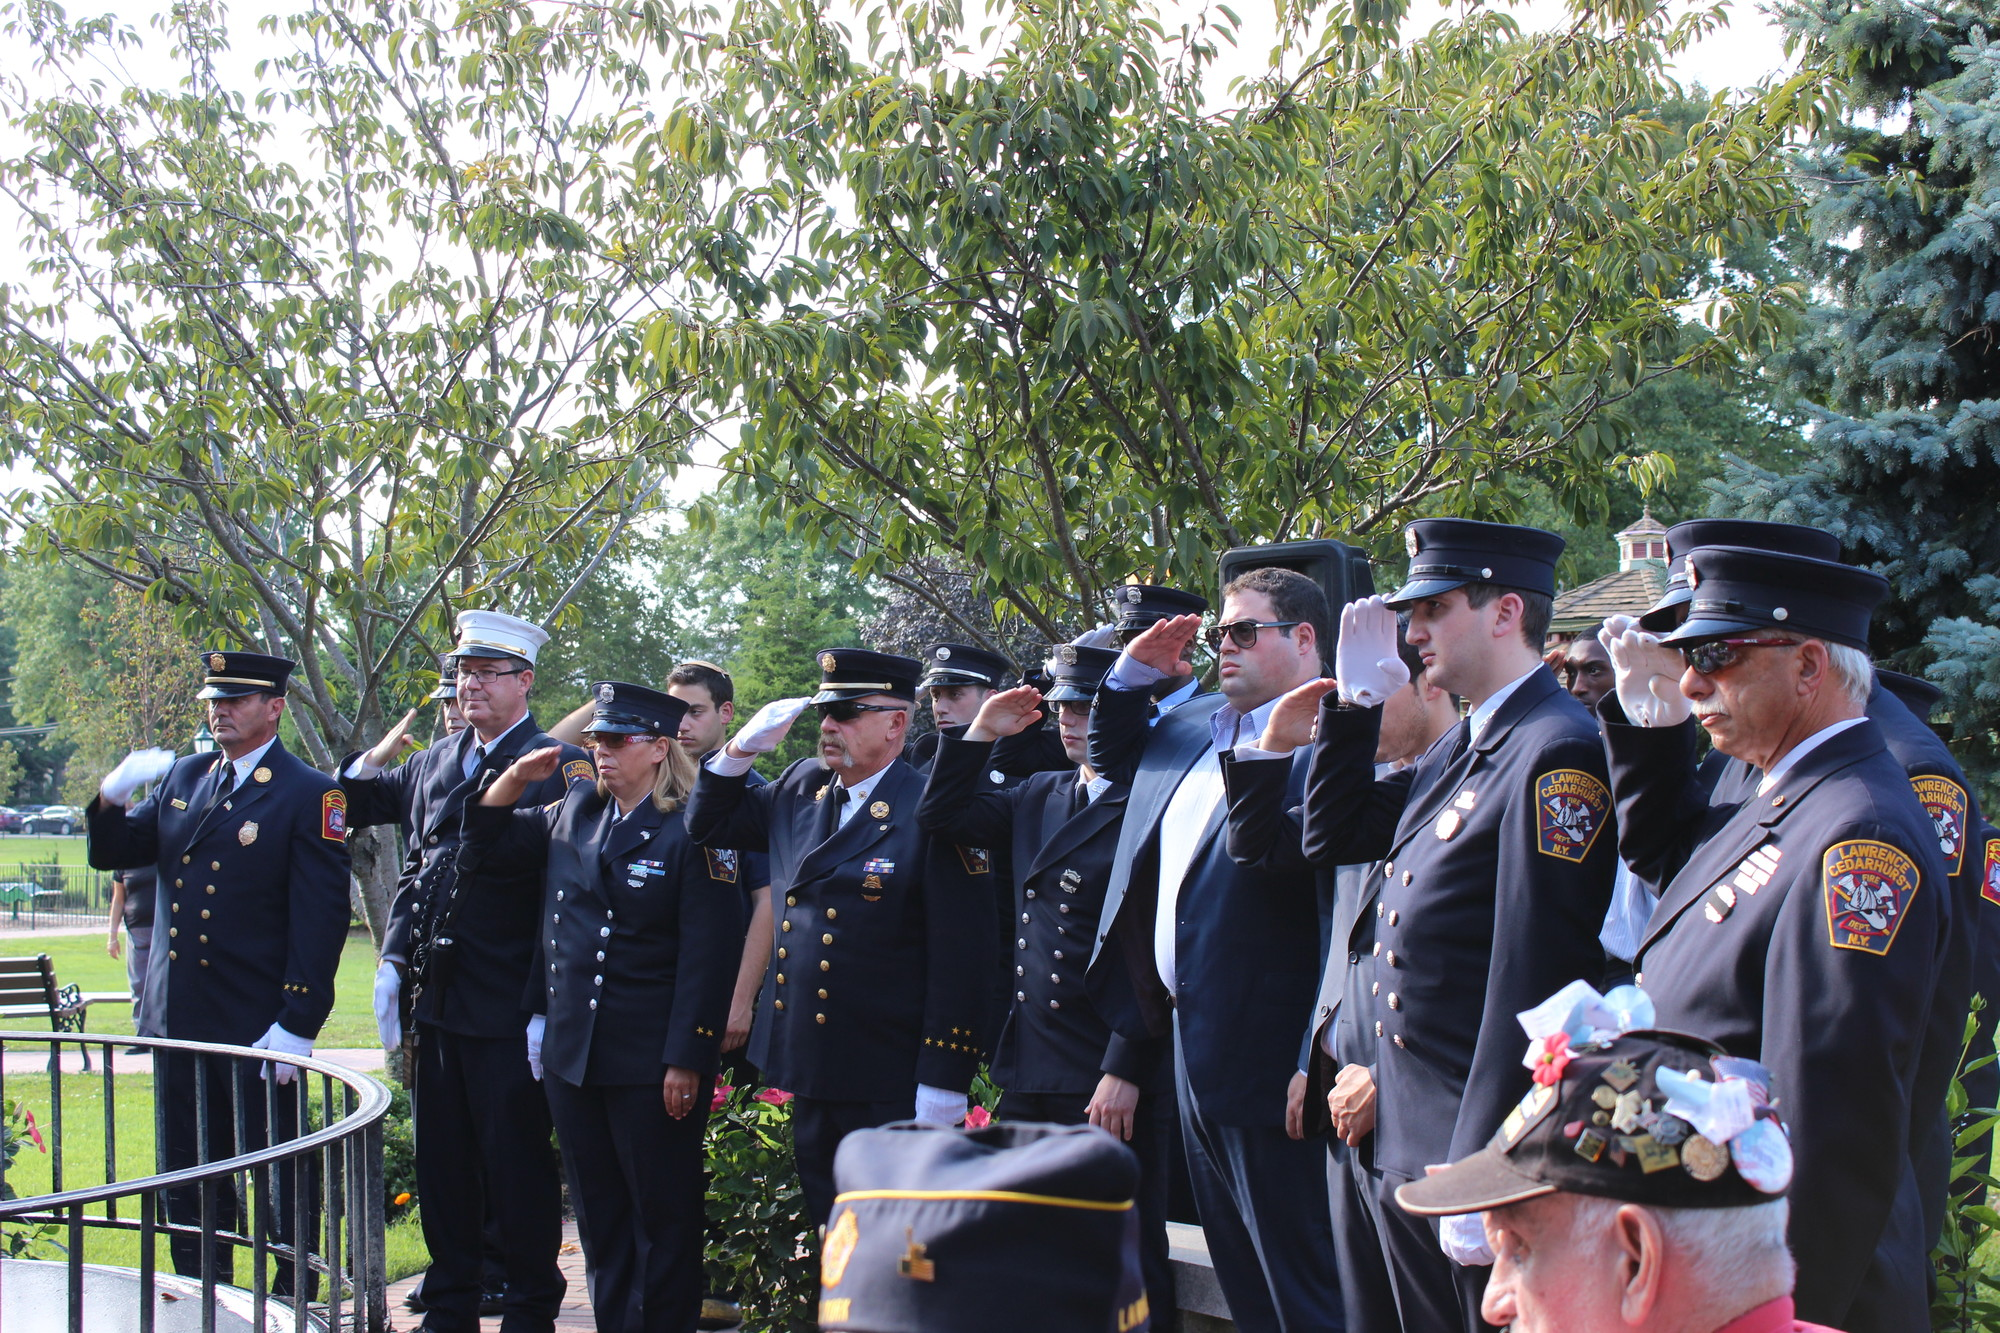 The Lawrence-Cedarhurst Fire Department raised their right hands to salute those who lost their lives on 9/11.